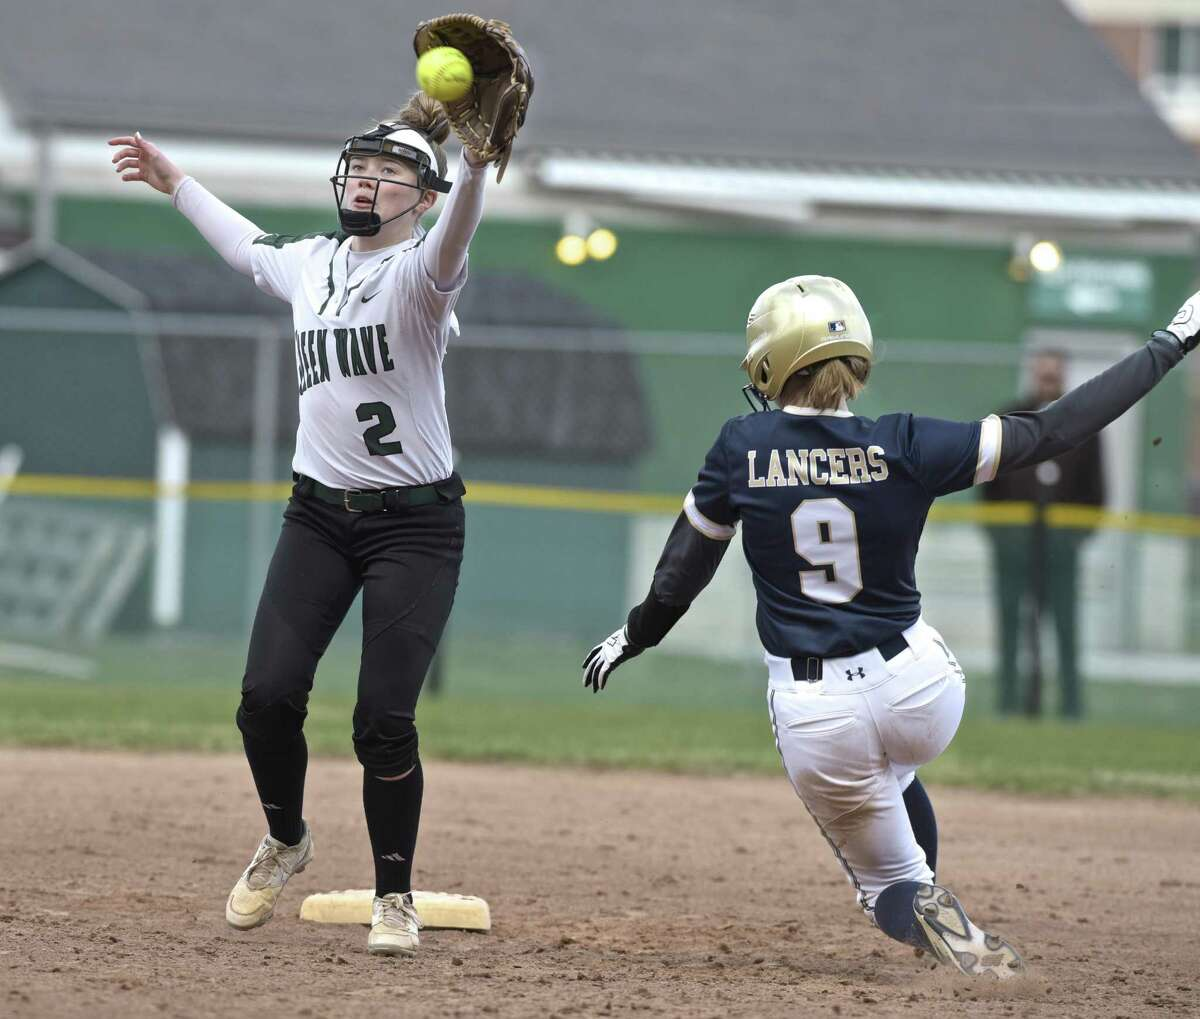 New Milford's Sara Mickelson (2) reaches for the throw as Notre Dame's Lucy Grant slides safely into second for the steal Wednesday afternoon at New Milford High School.